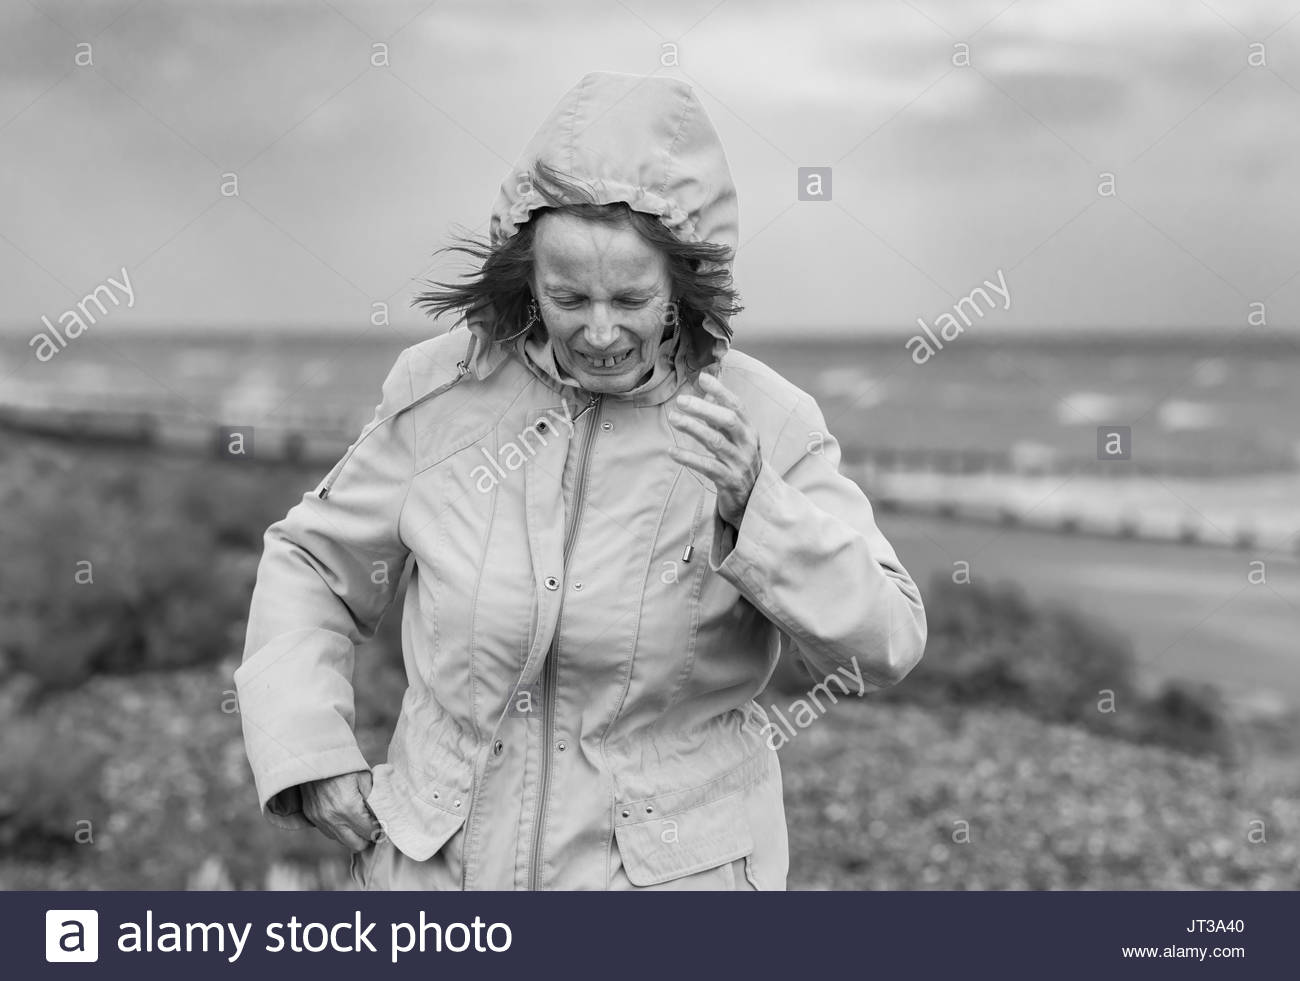 Elderly / Middle aged woman running to escape the poor weather on a beach on a cold windy day in the UK. Black & - Stock Image